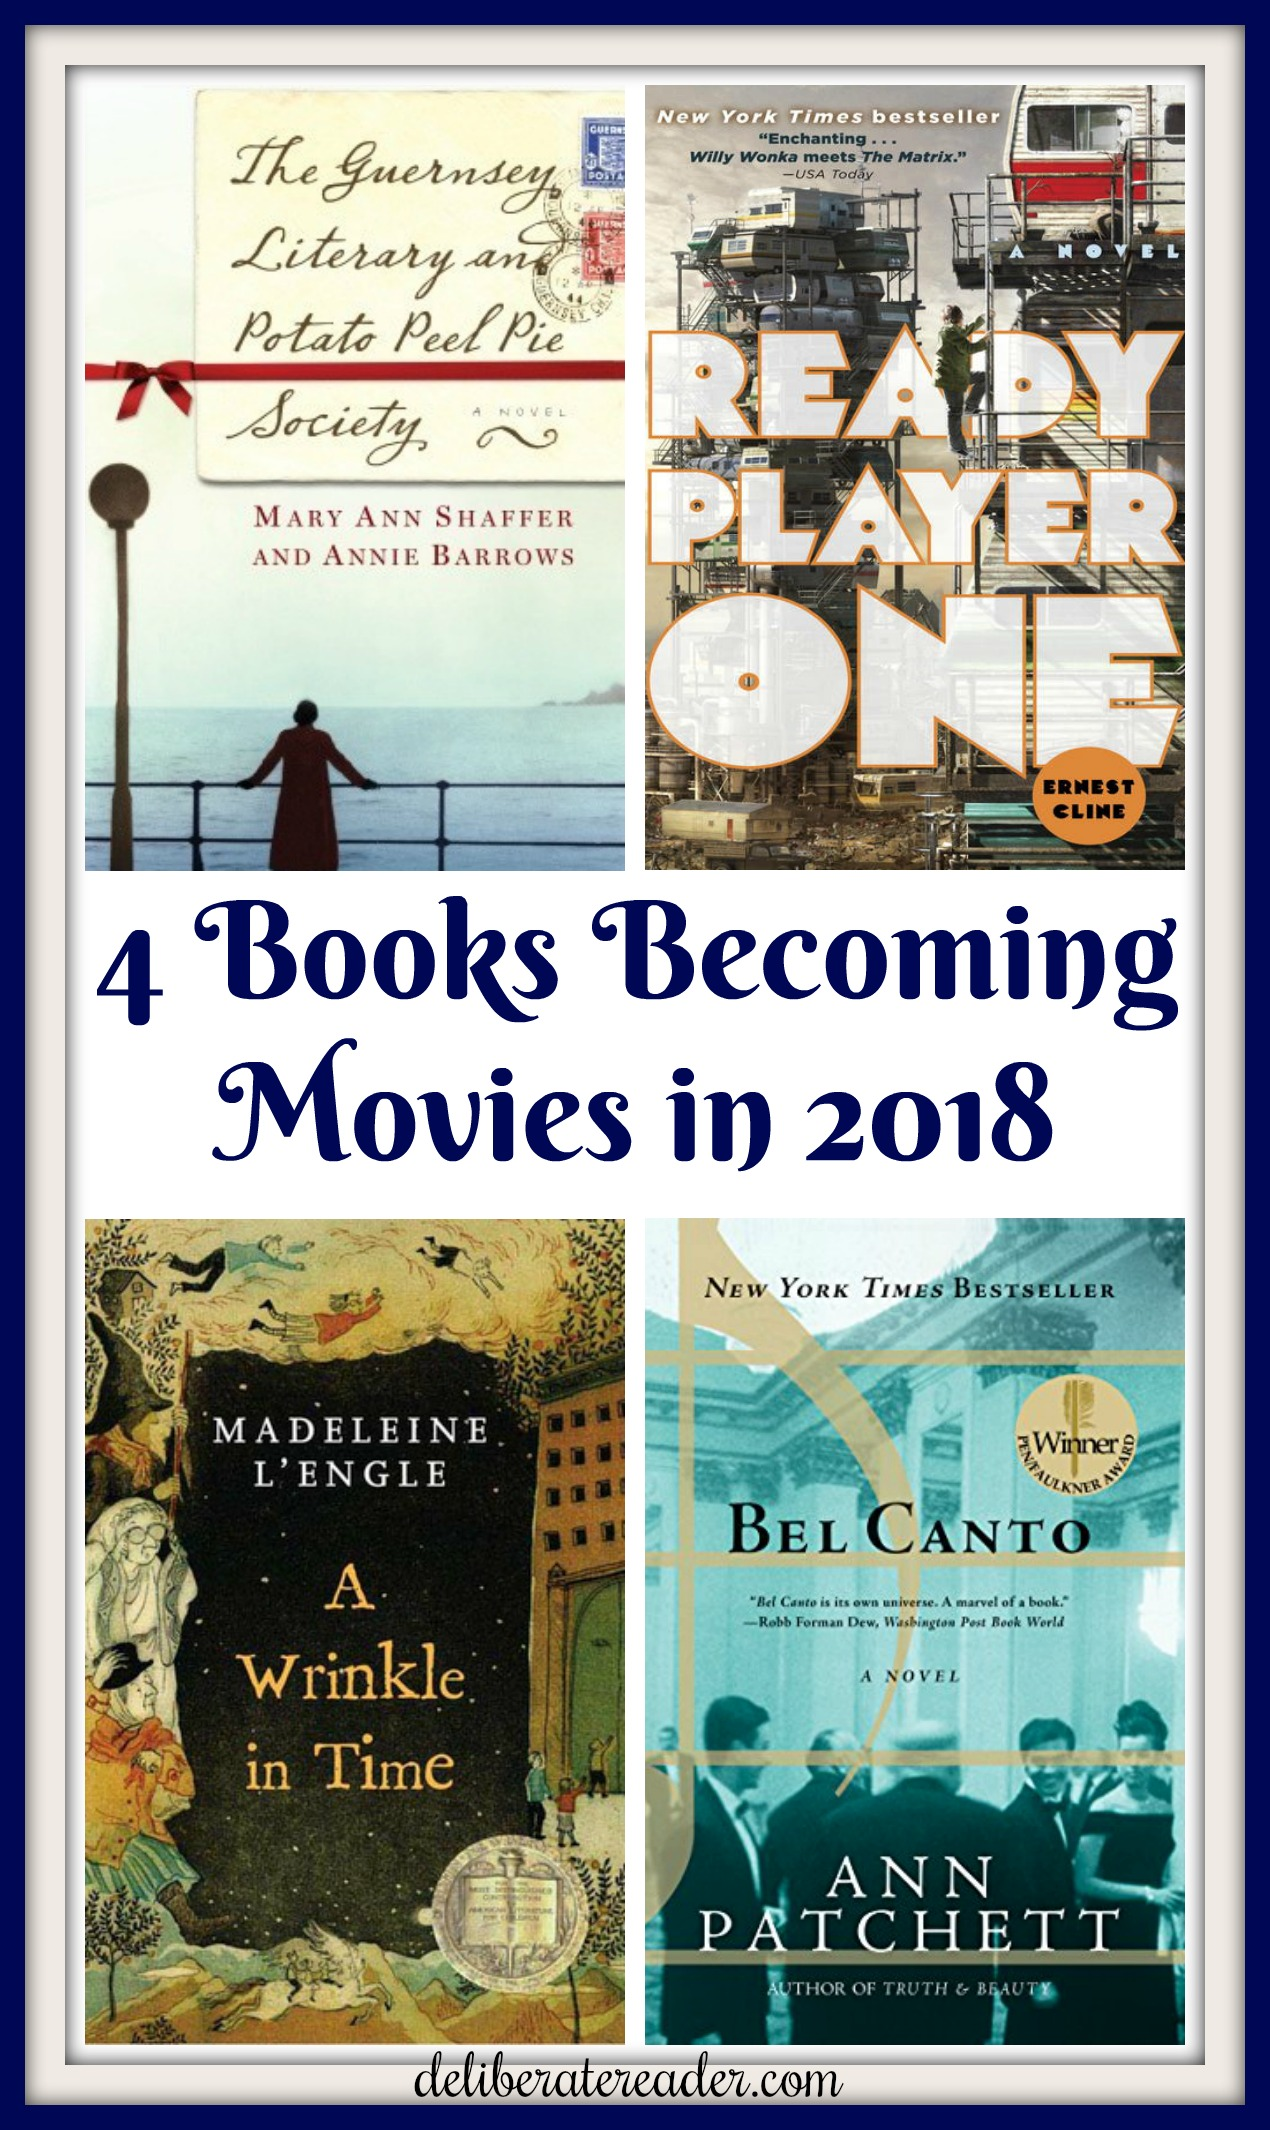 Books Being Turned Into Movies in 2018